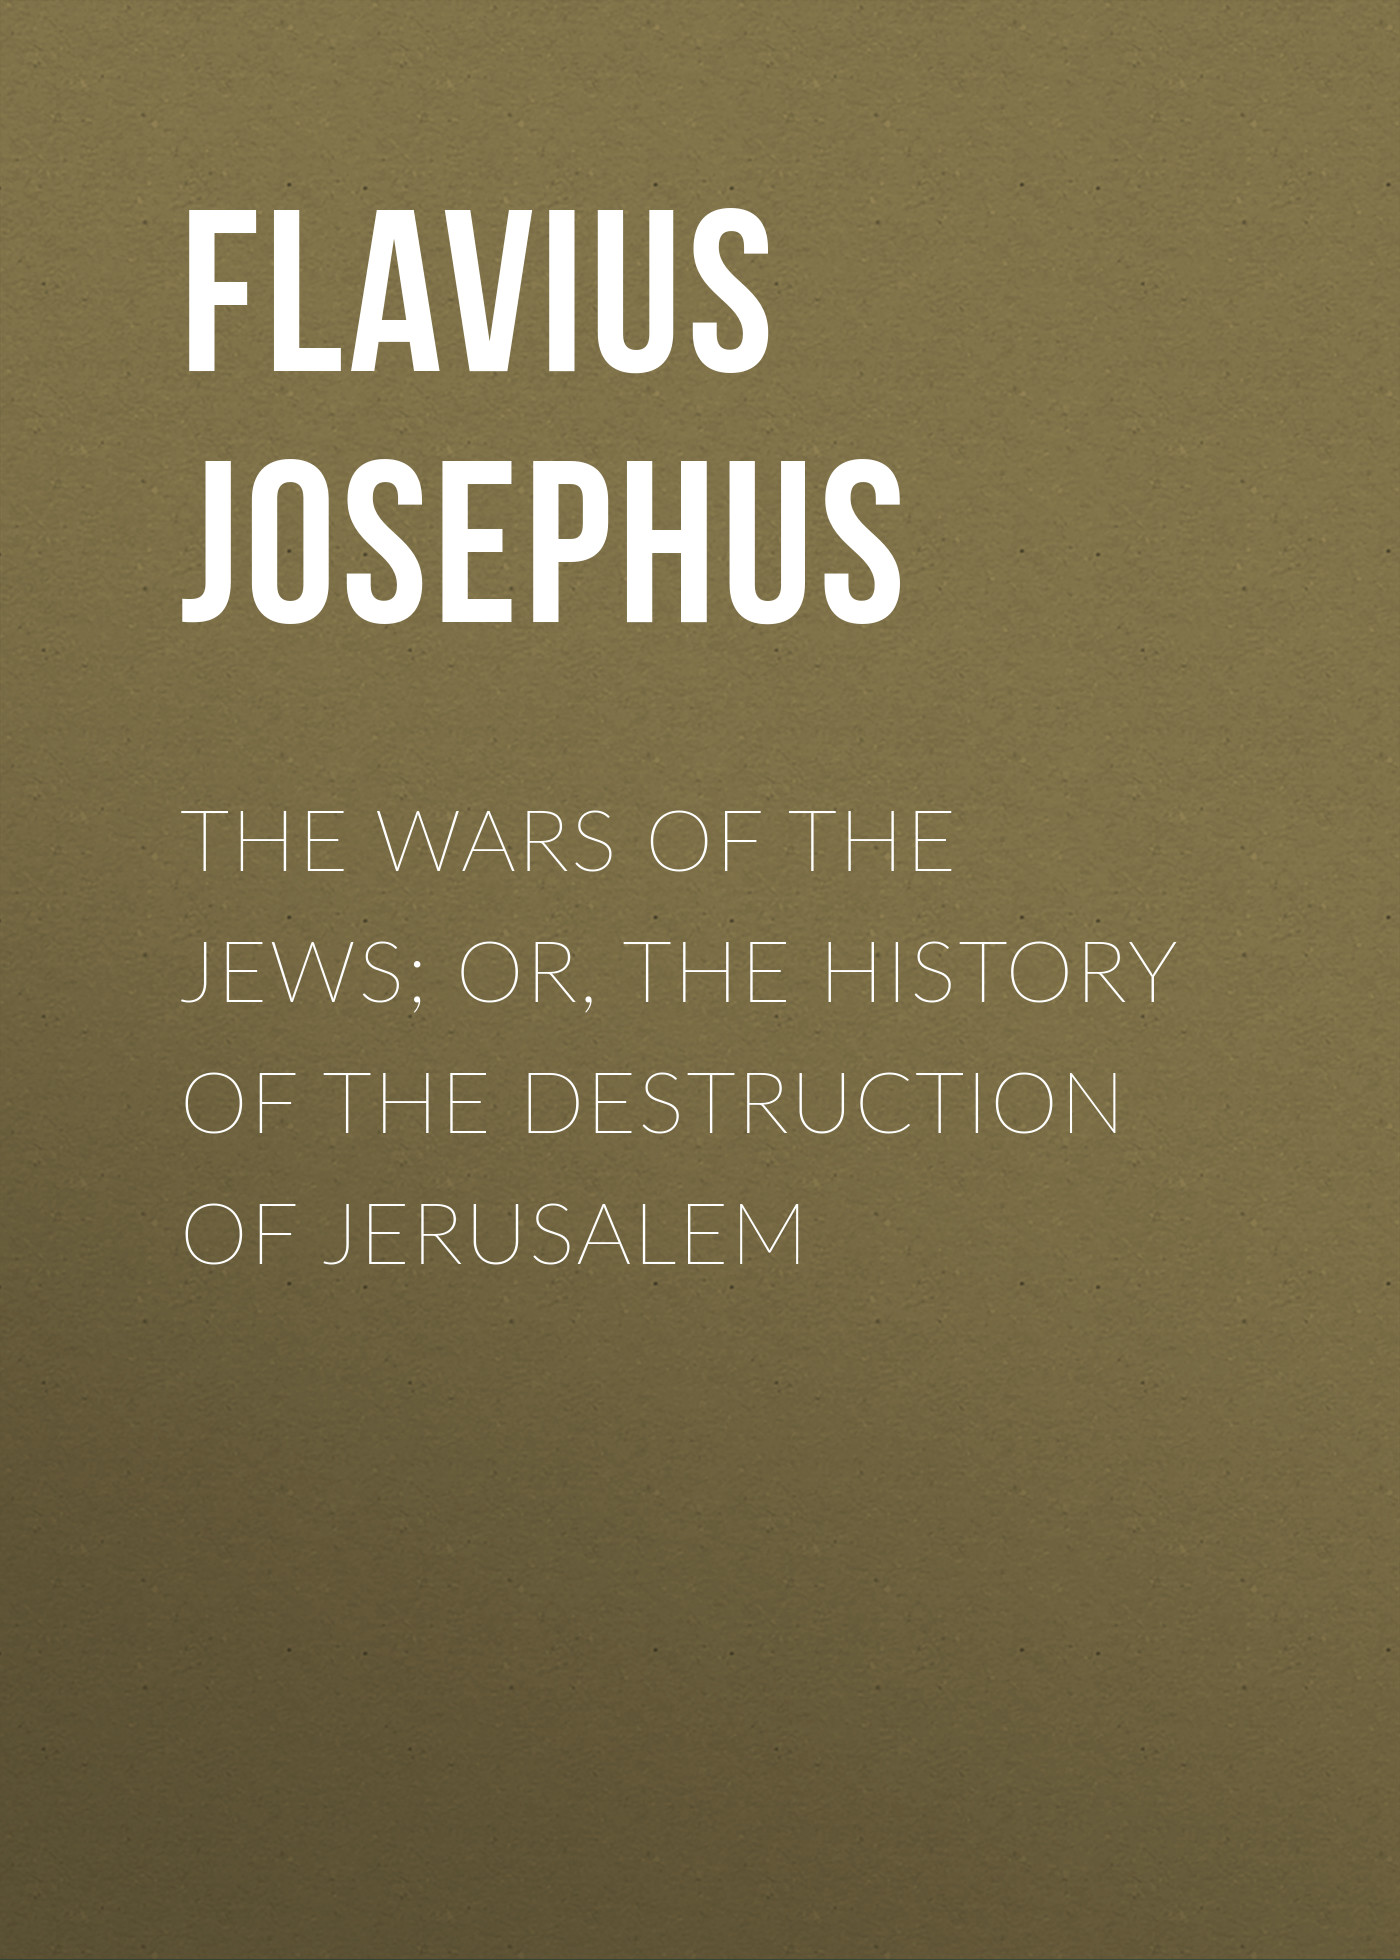 Flavius Josephus The Wars of the Jews; Or, The History of the Destruction of Jerusalem rivka nir the destruction of jerusalem and the idea of redemption in the syriac apocalypse of baruch